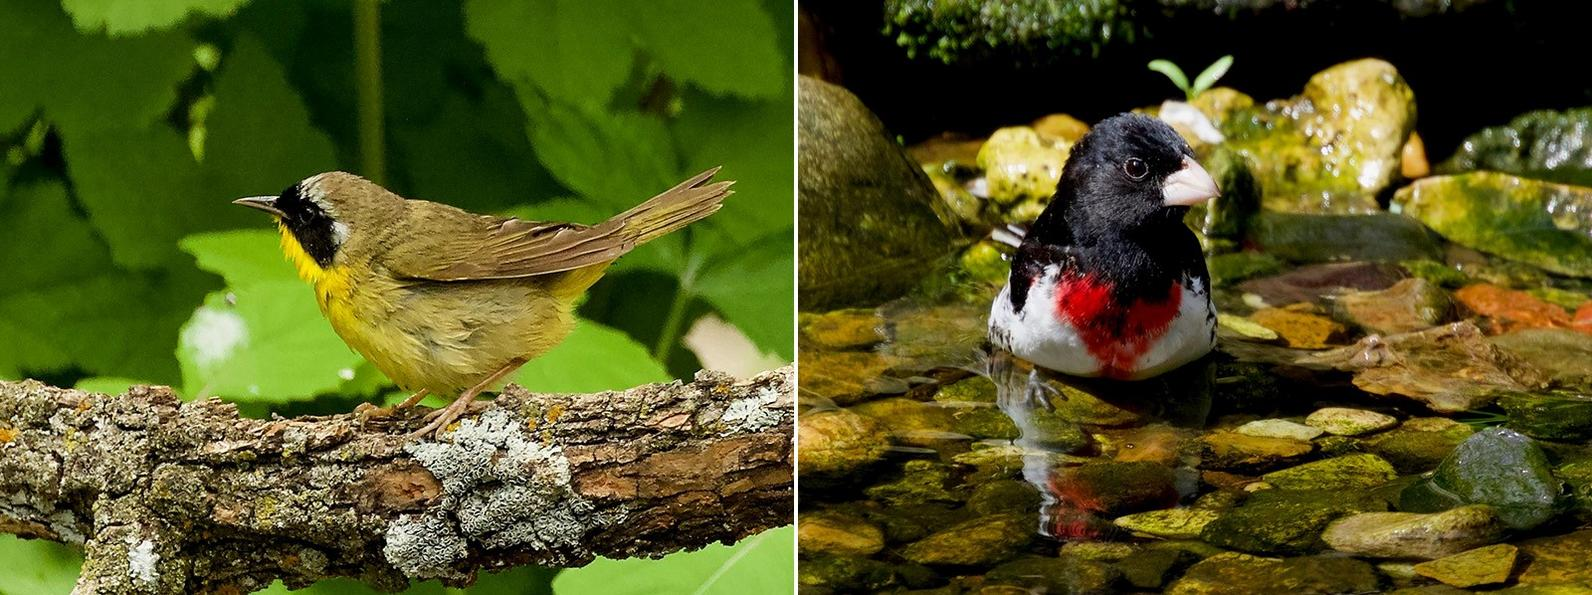 Common Yellowthroat left, Rose-breasted Grosbeak right